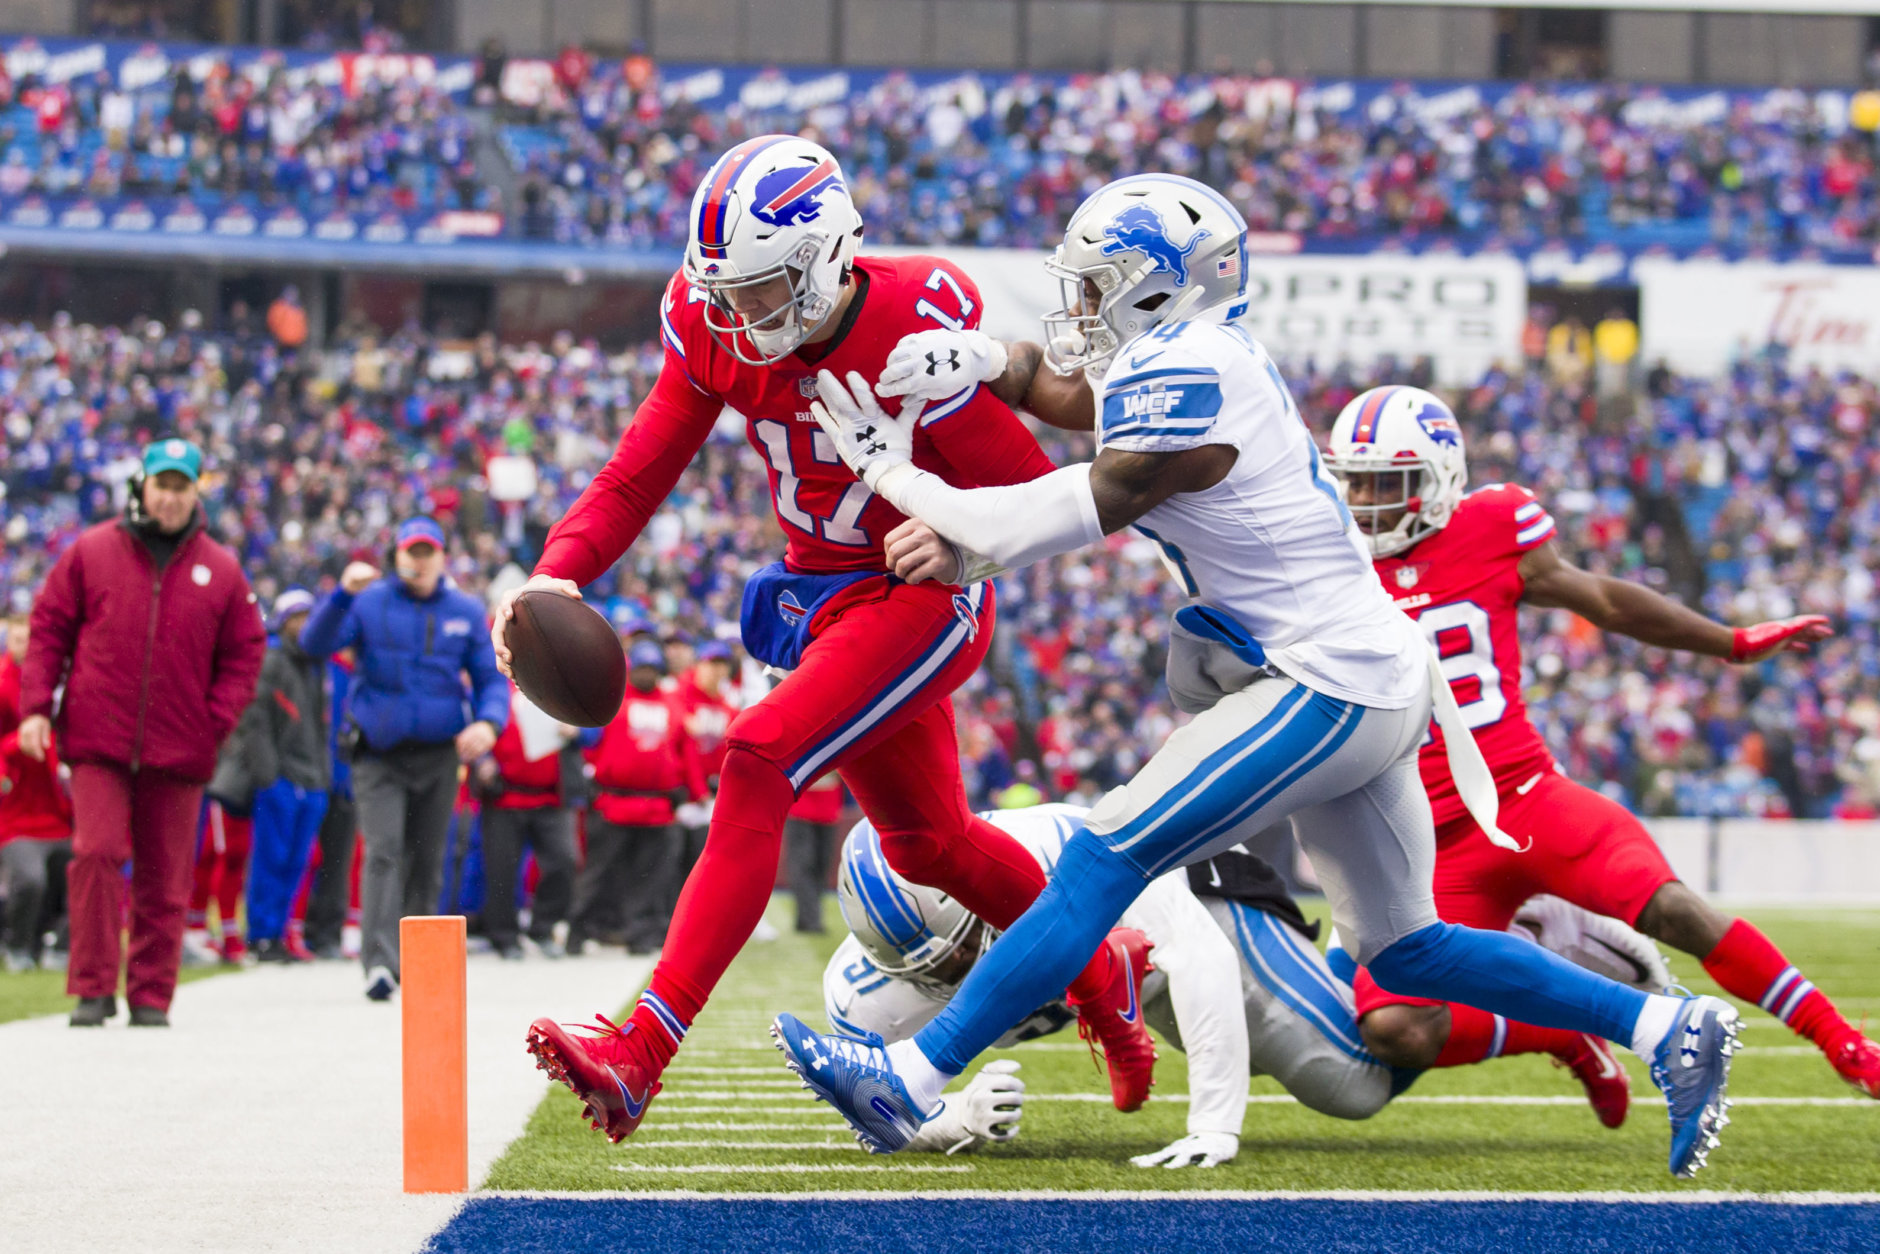 ORCHARD PARK, NY - DECEMBER 16:  Josh Allen #17 of the Buffalo Bills carries the ball for a touchdown  during the second quarter against the Detroit Lions at New Era Field on December 16, 2018 in Orchard Park, New York.  (Photo by Brett Carlsen/Getty Images)